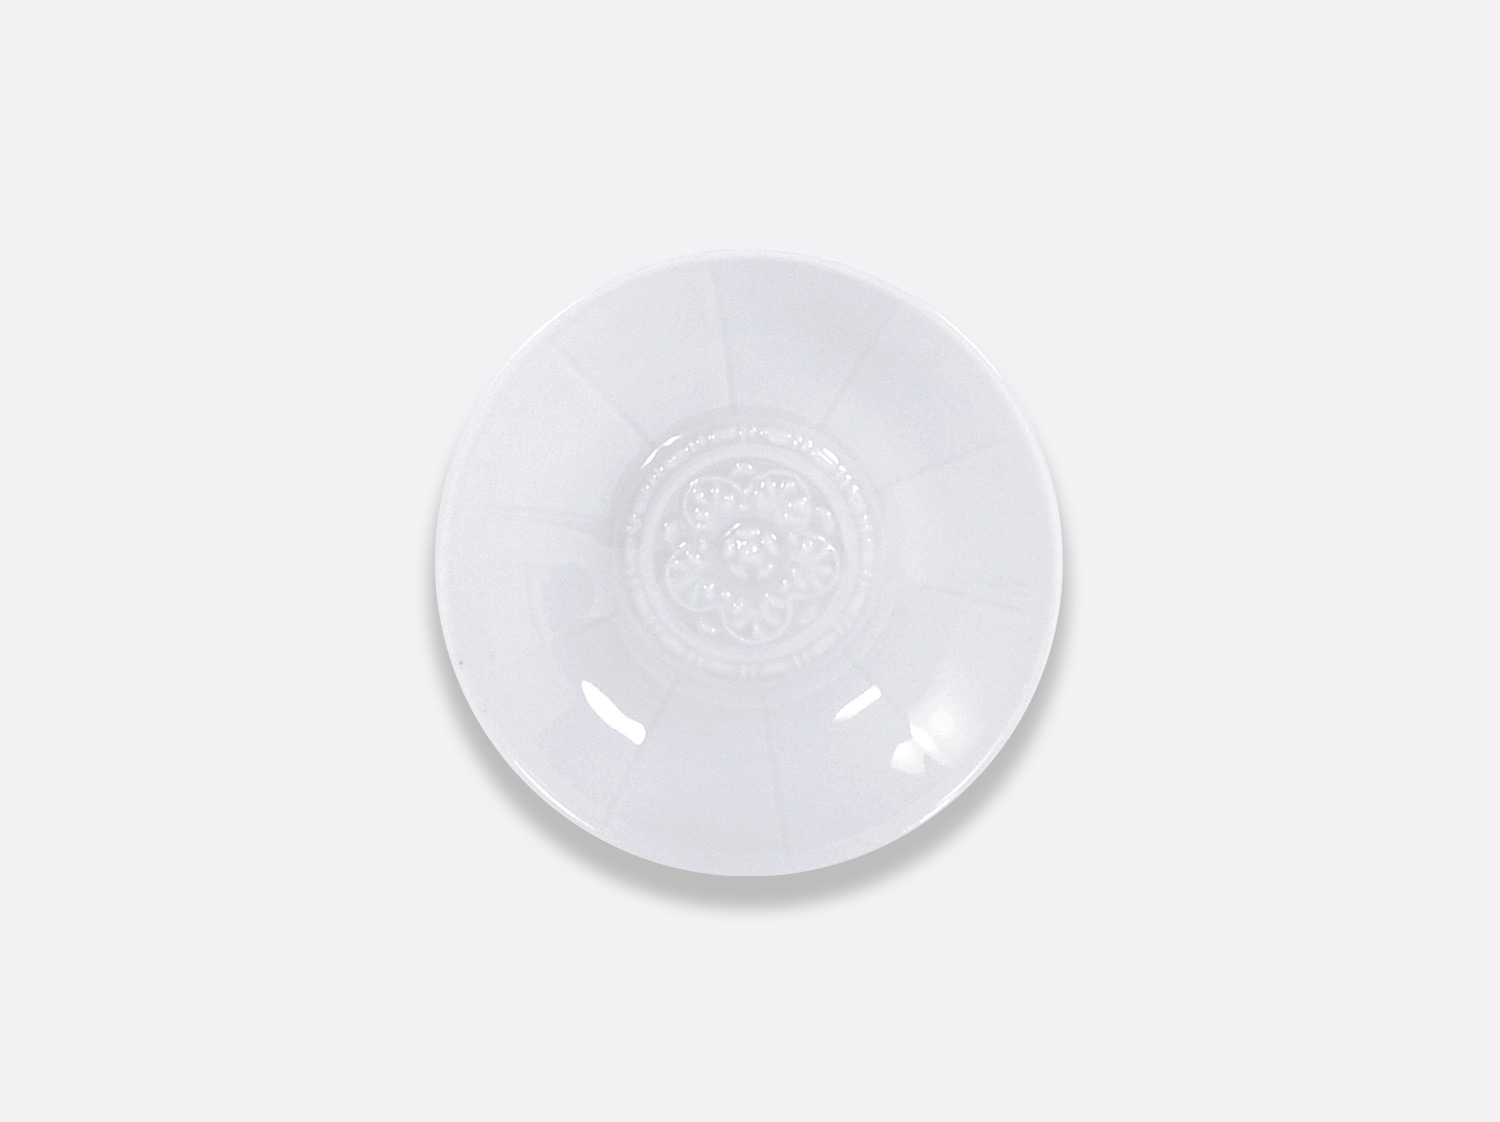 China Condiment dish 10 cm of the collection Louvre | Bernardaud